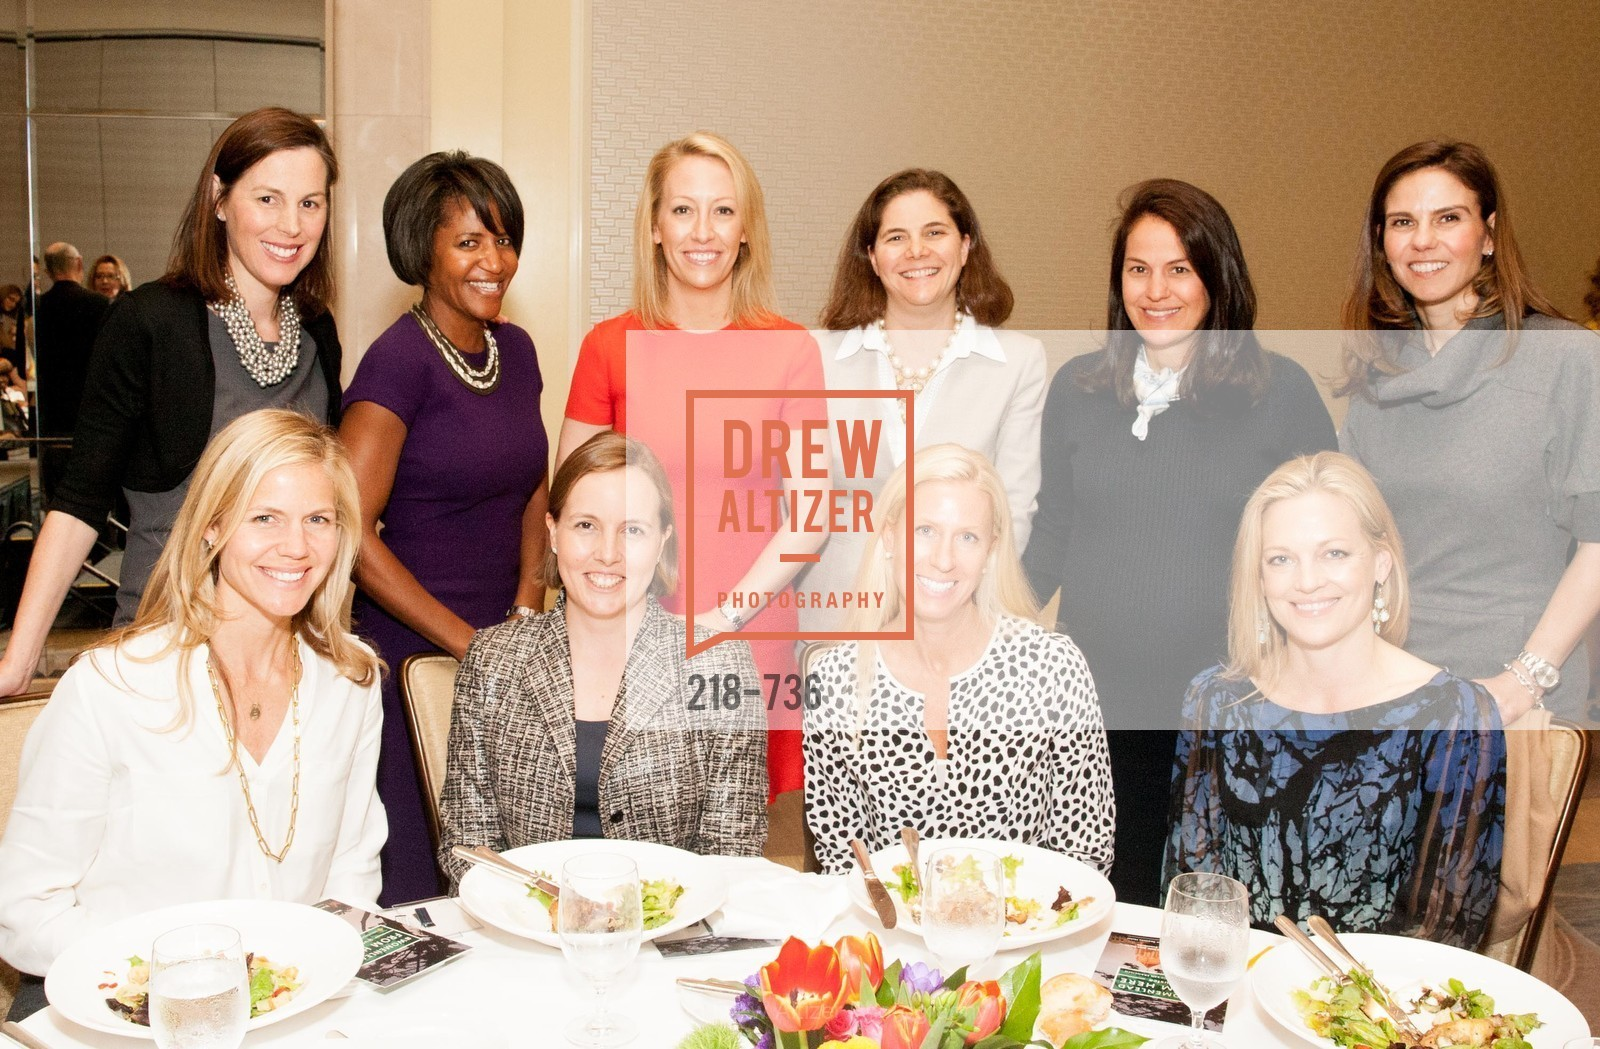 Mary Miller, Mary Graf, Jeana Toney, Katie Rothschild, Julia Hartz, Joy Woeber, Carter Kraber, Anna Morfit, Maja Smith, Andrea Zola, USF Women in Leadership and Philanthropy Luncheon With Julia Hartz, Co-Founder & President of EventBrite, US, May 16th, 2015,Drew Altizer, Drew Altizer Photography, full-service agency, private events, San Francisco photographer, photographer california